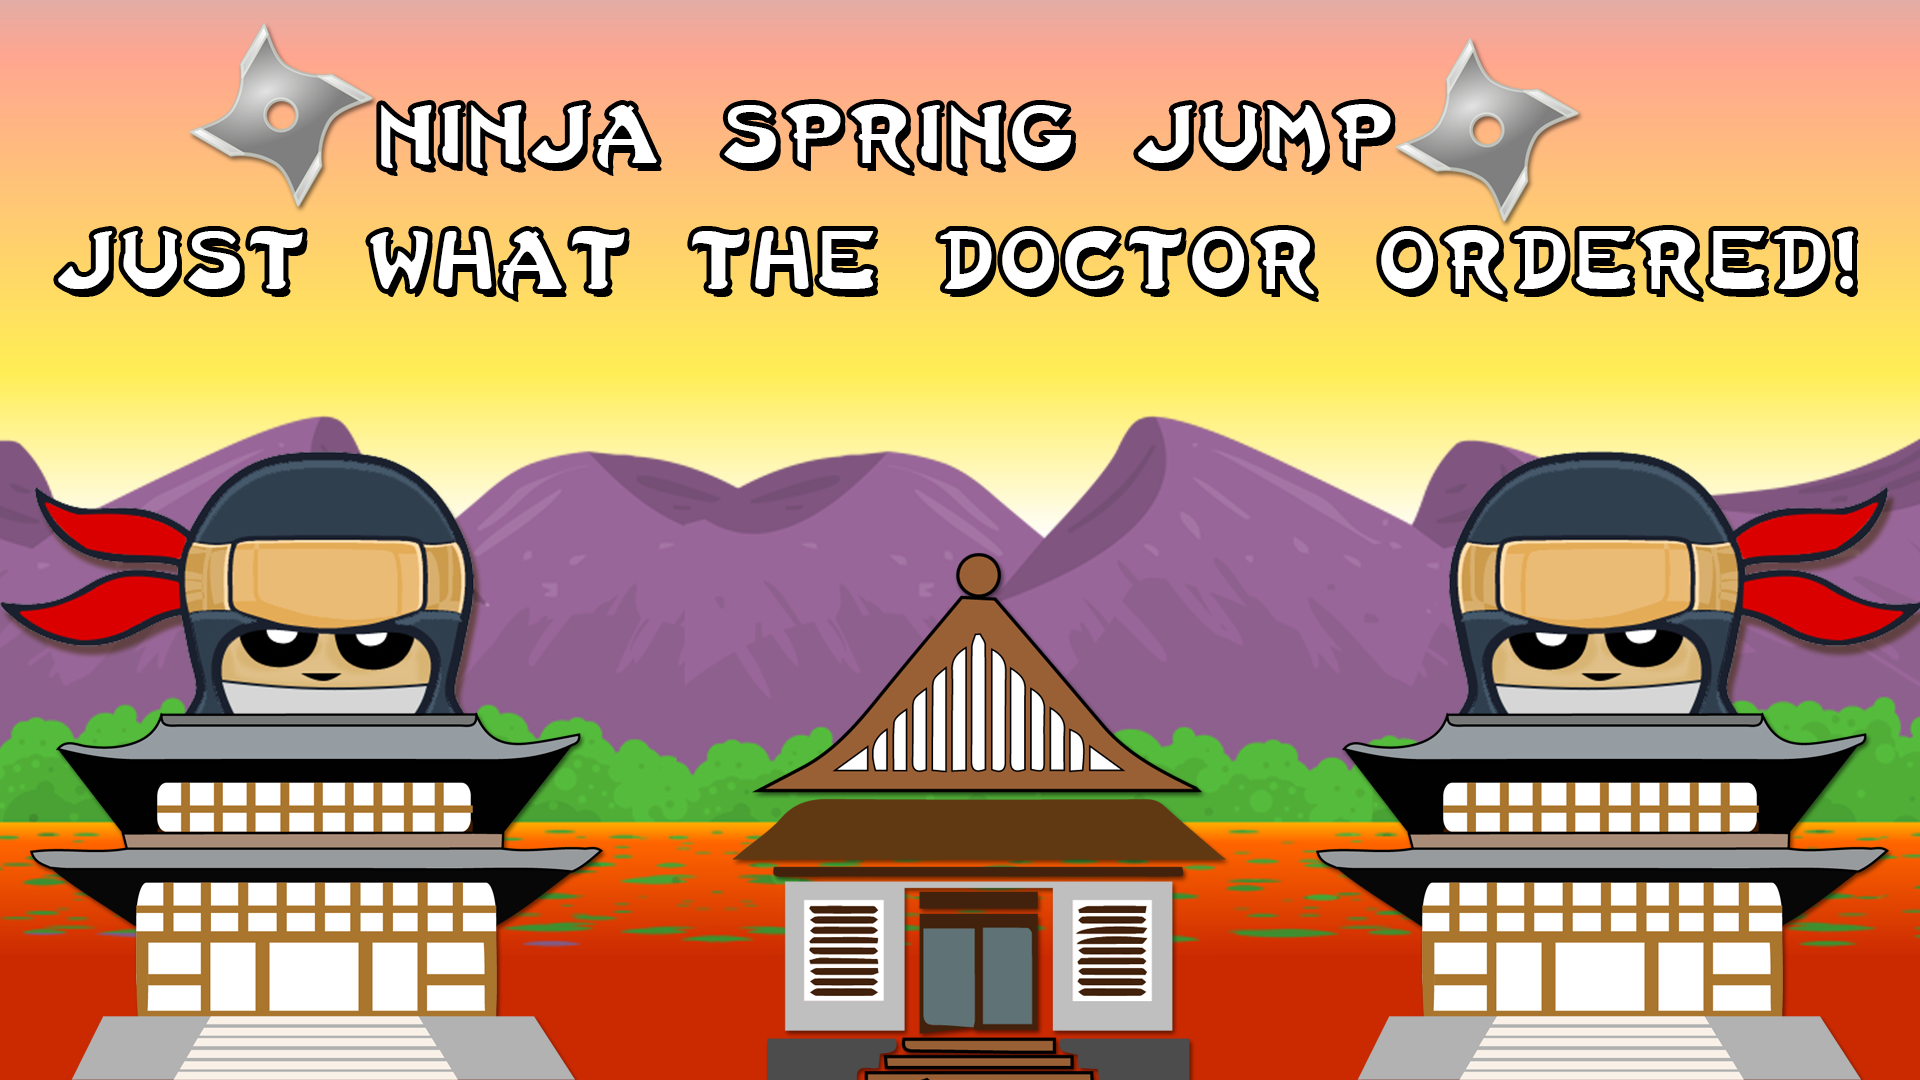 Amazon.com: Spring Ninja Jump: Appstore for Android